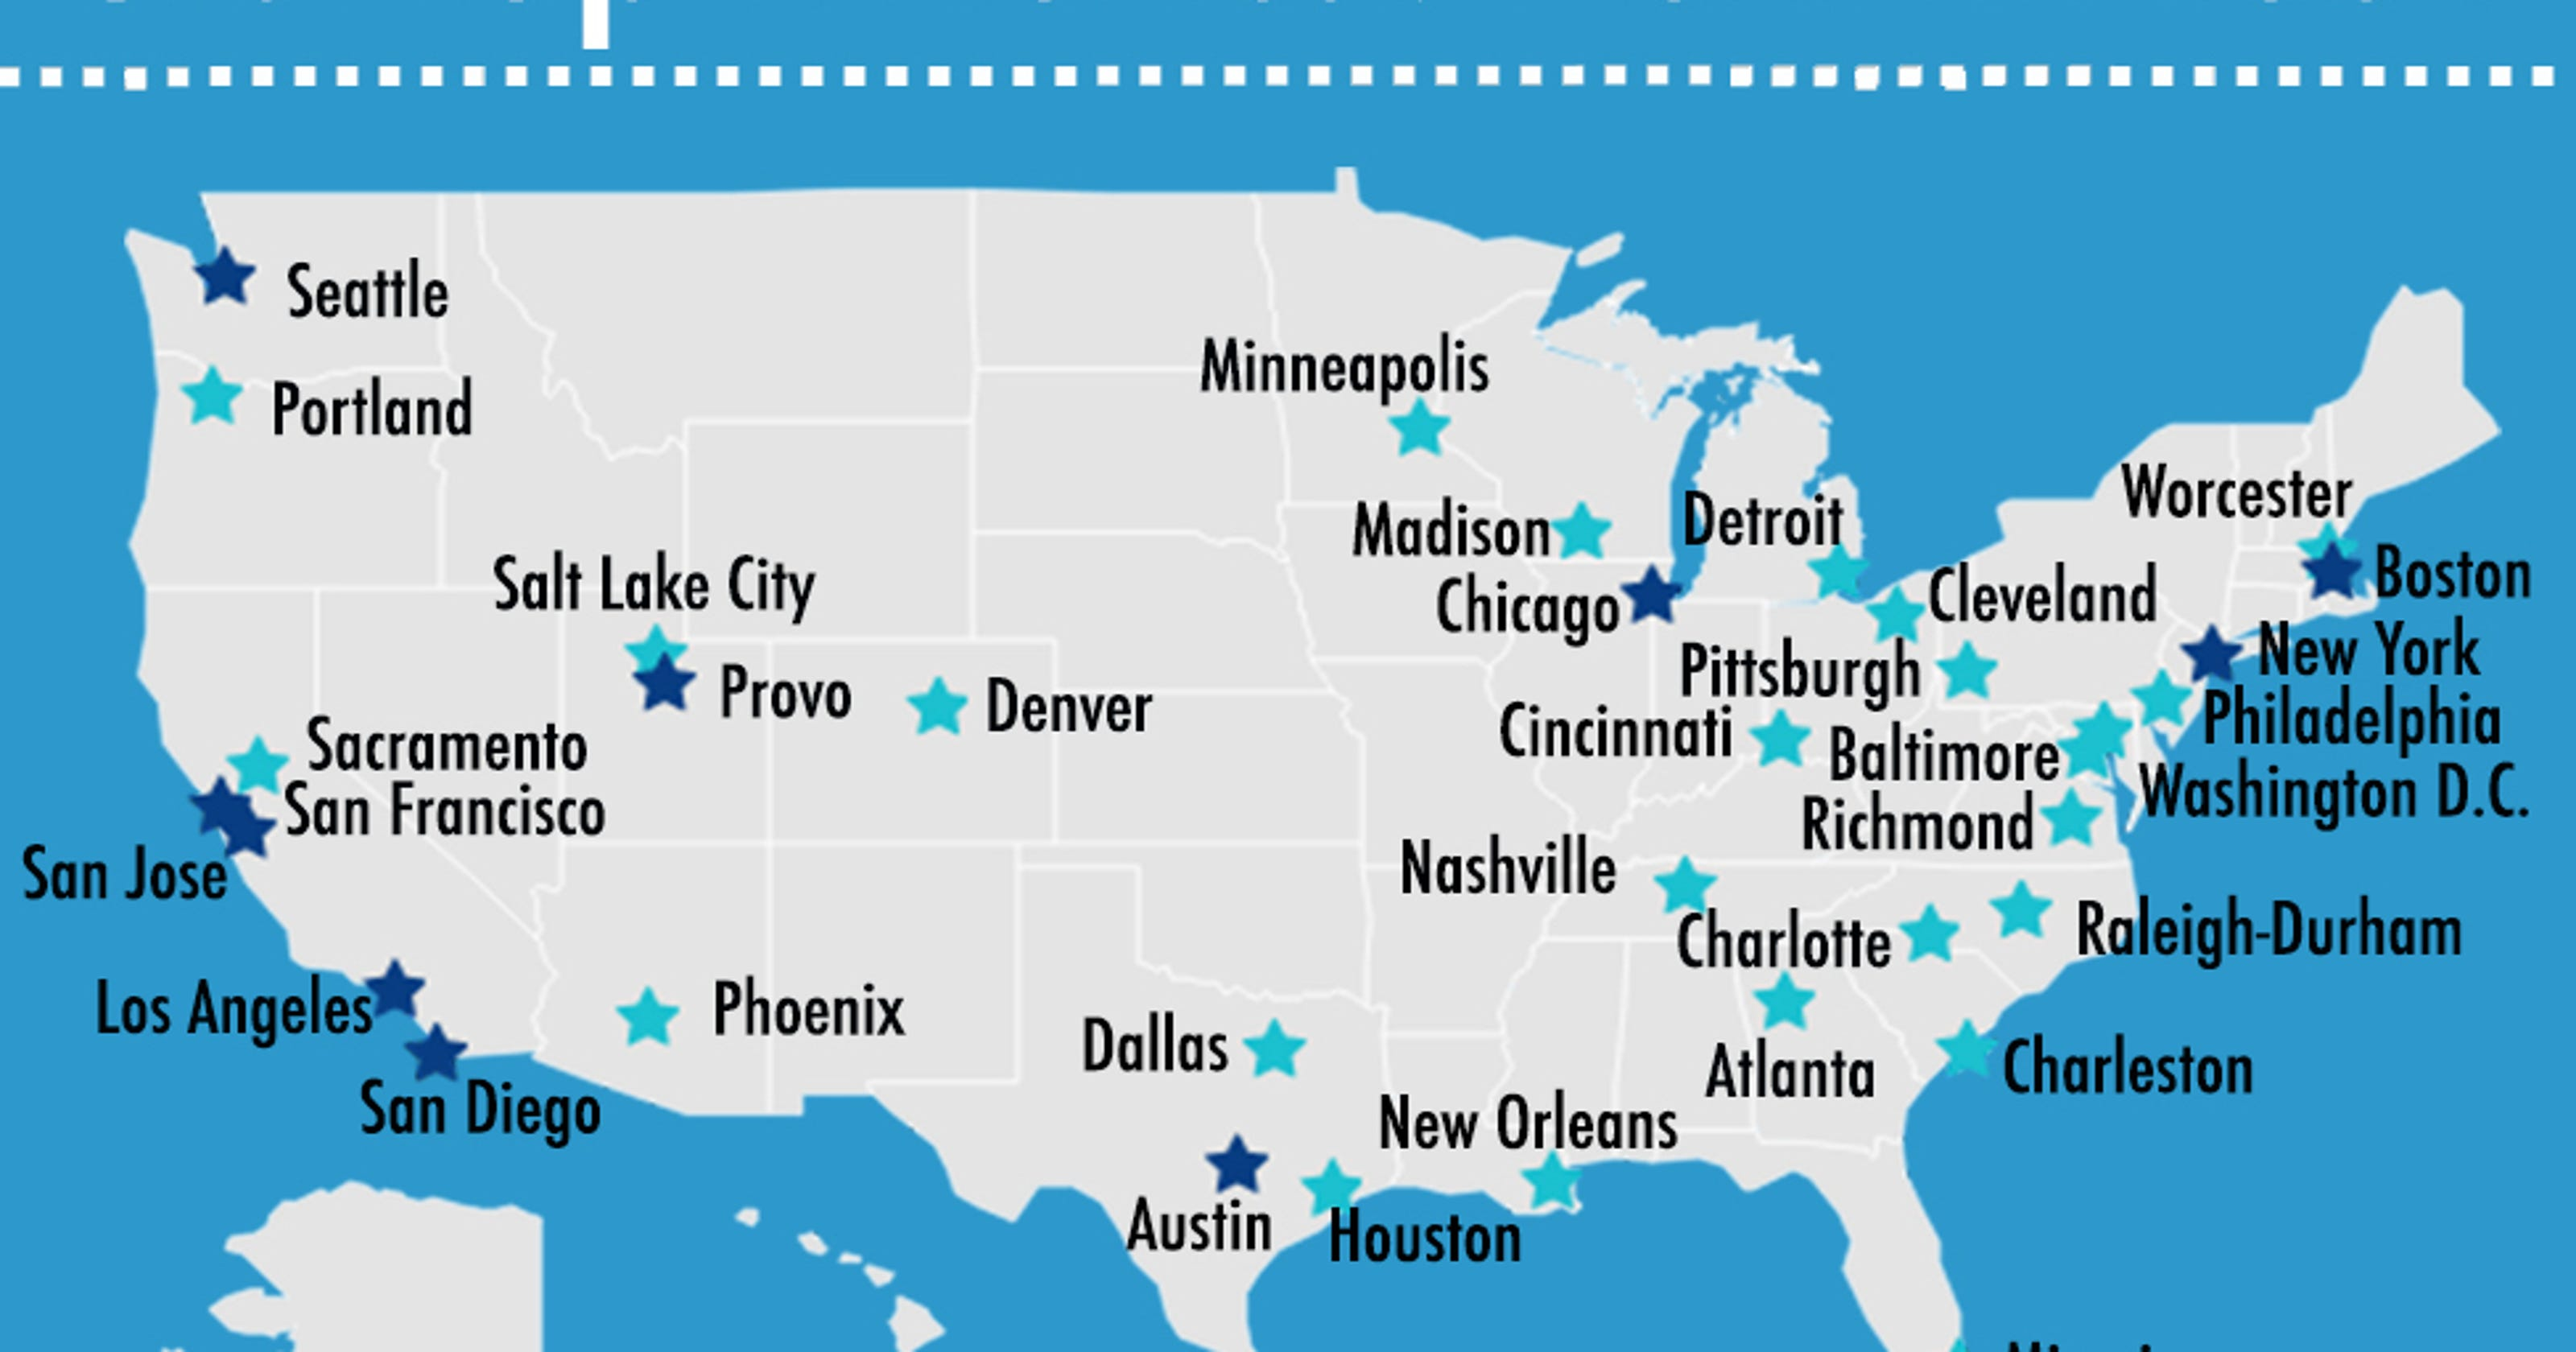 Your next high-paid tech job may be in these cities